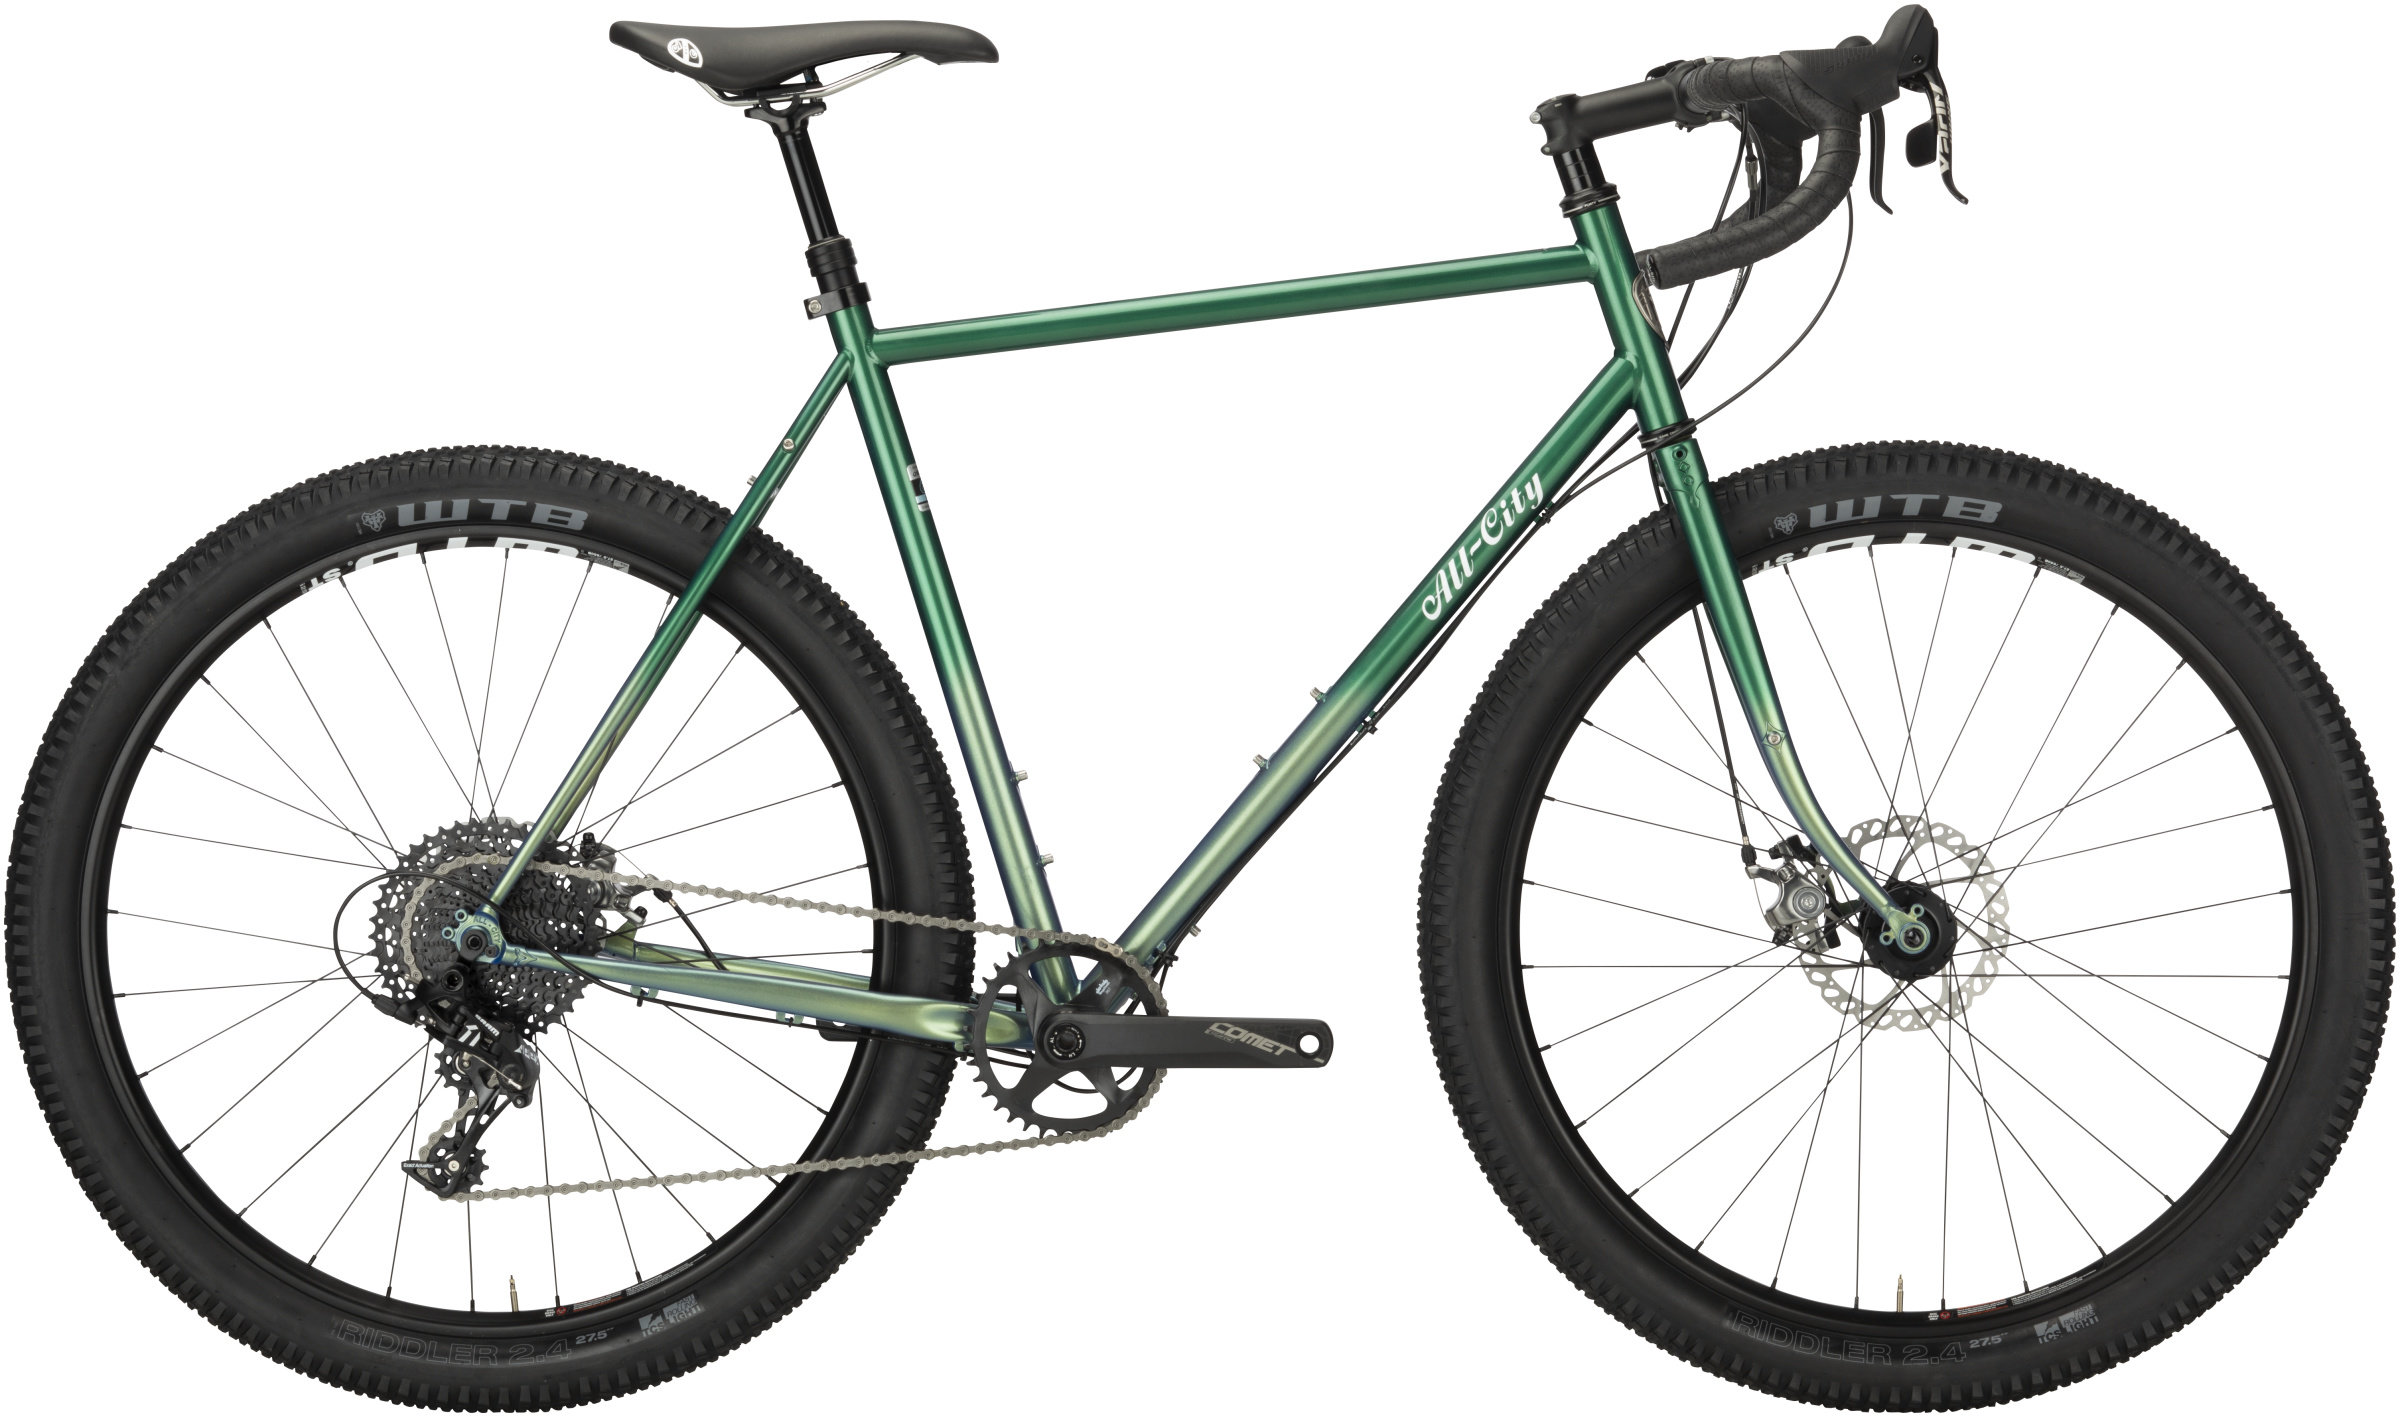 green all-city gorilla monsoon drop bar bikepacking bike